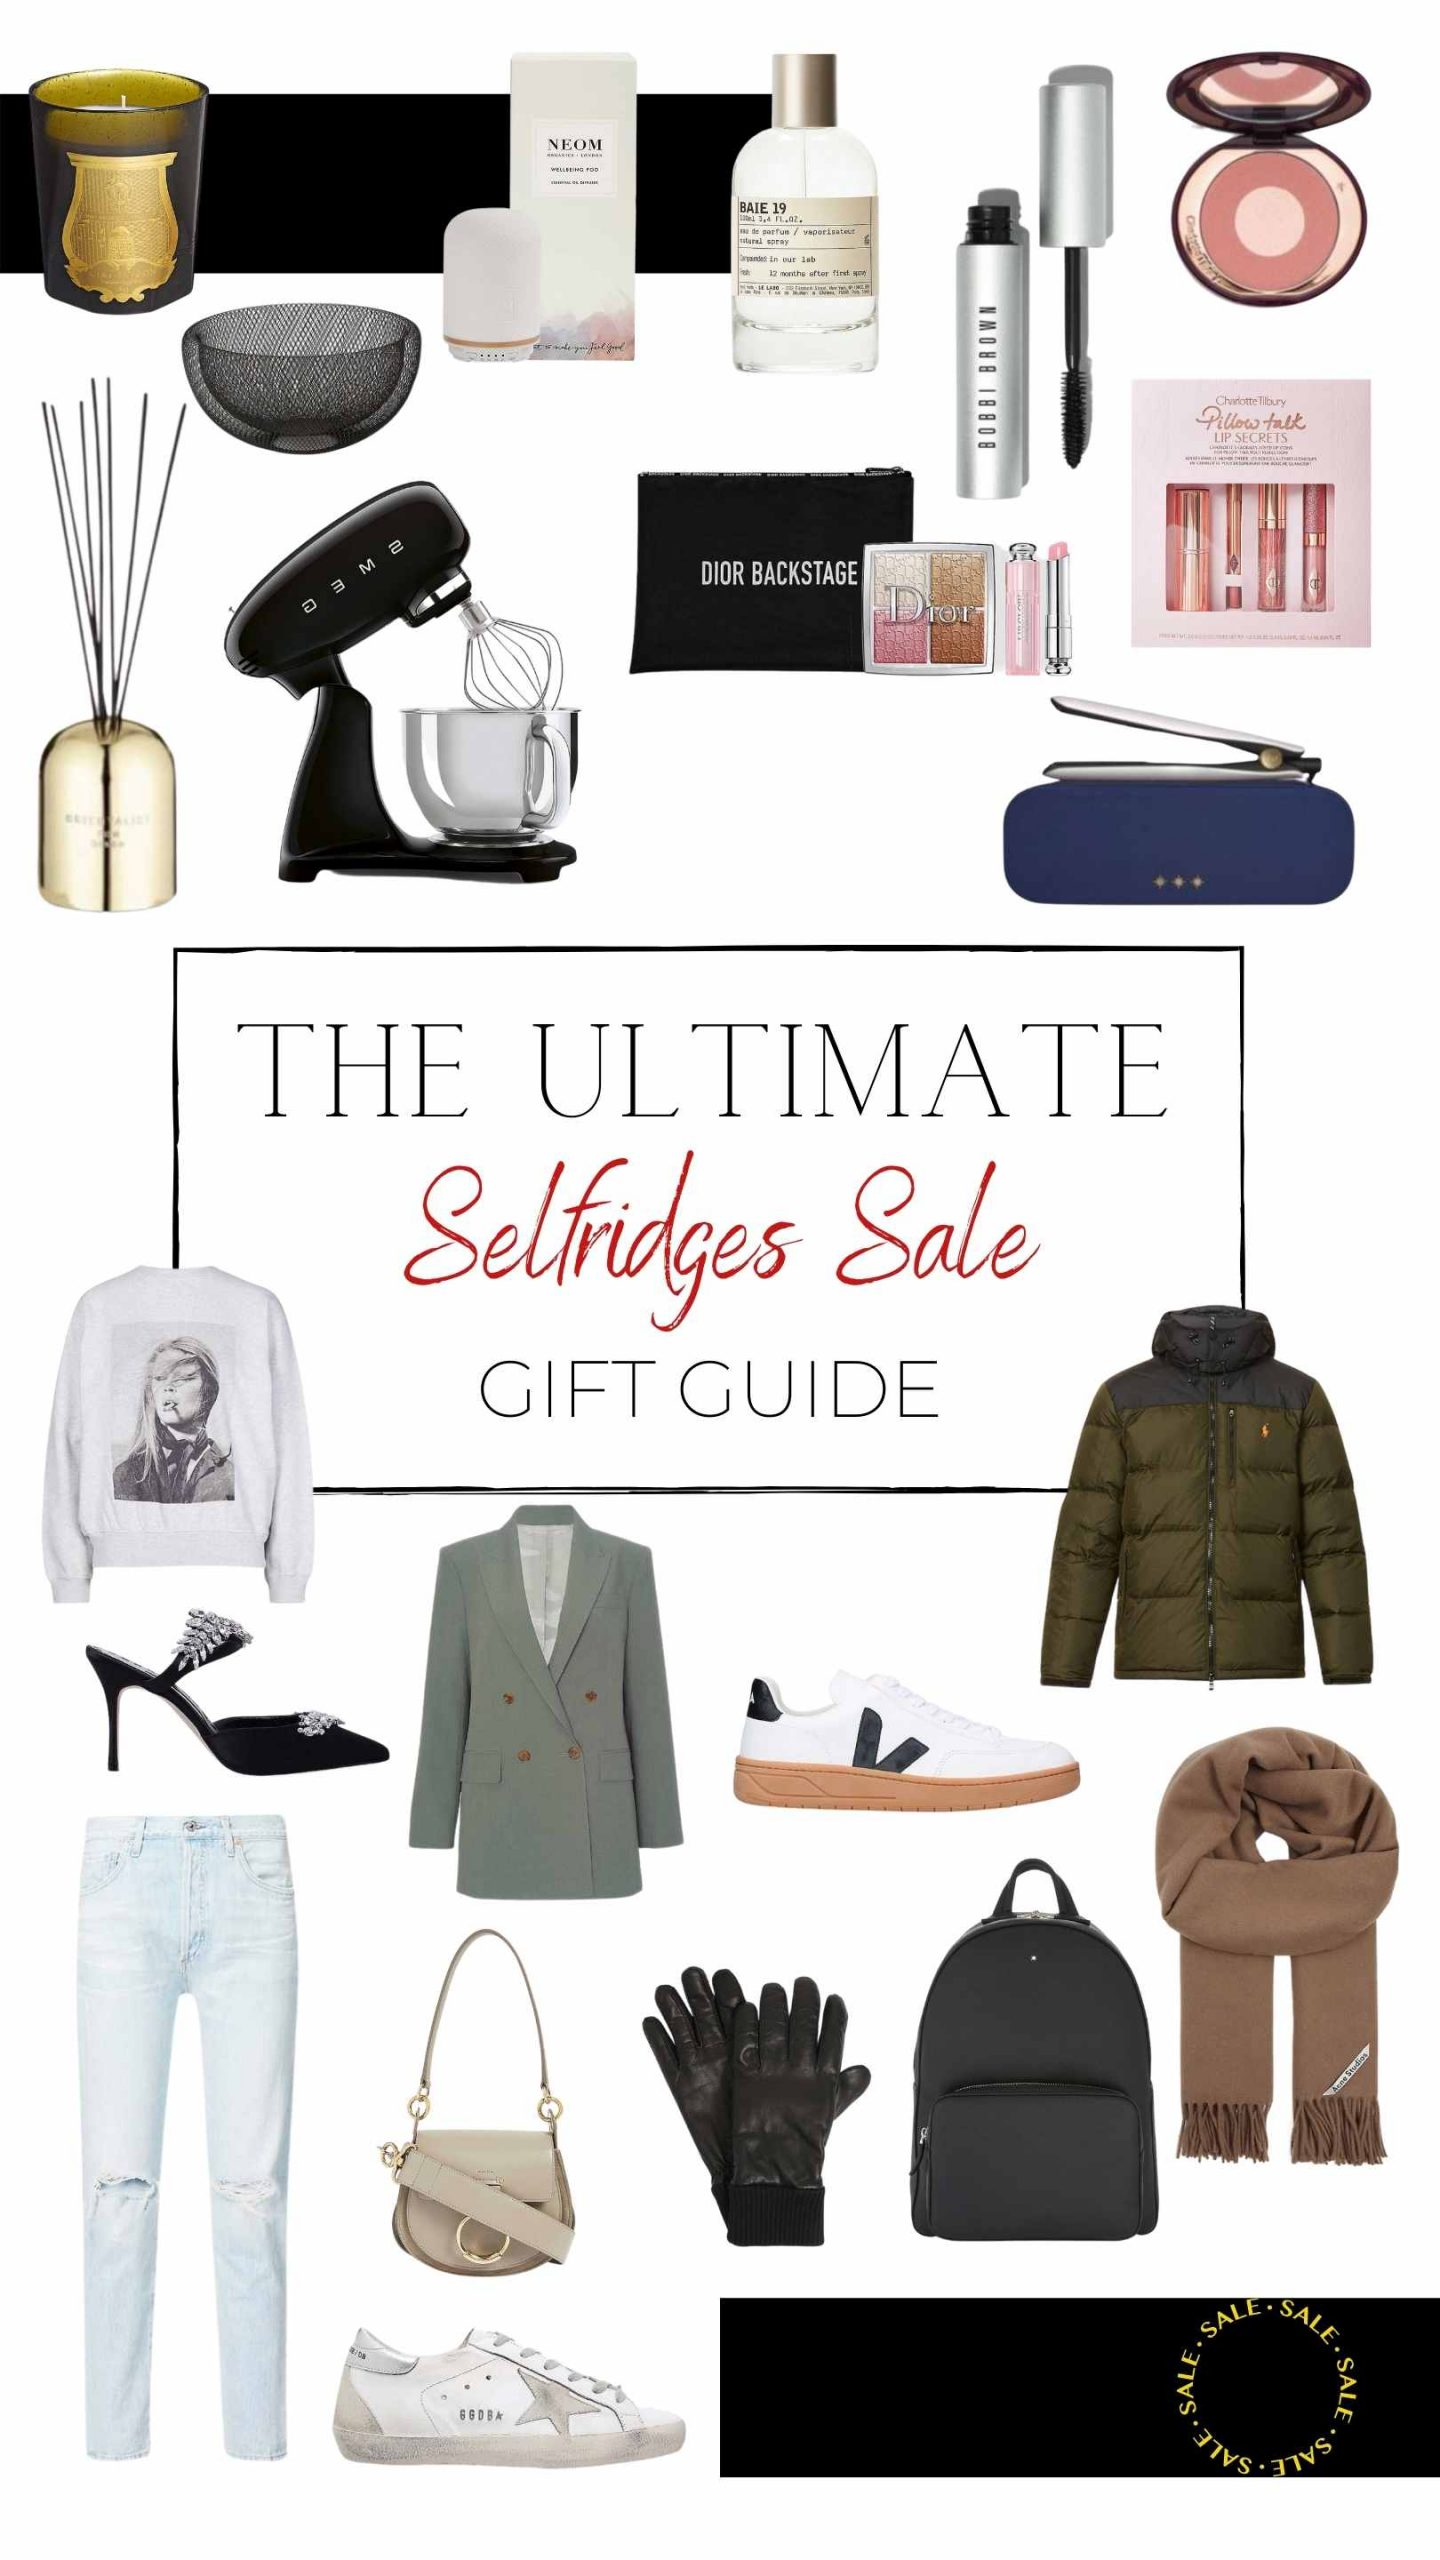 AD | CHRISTMAS COMES EARLY WITH SELFRIDGES